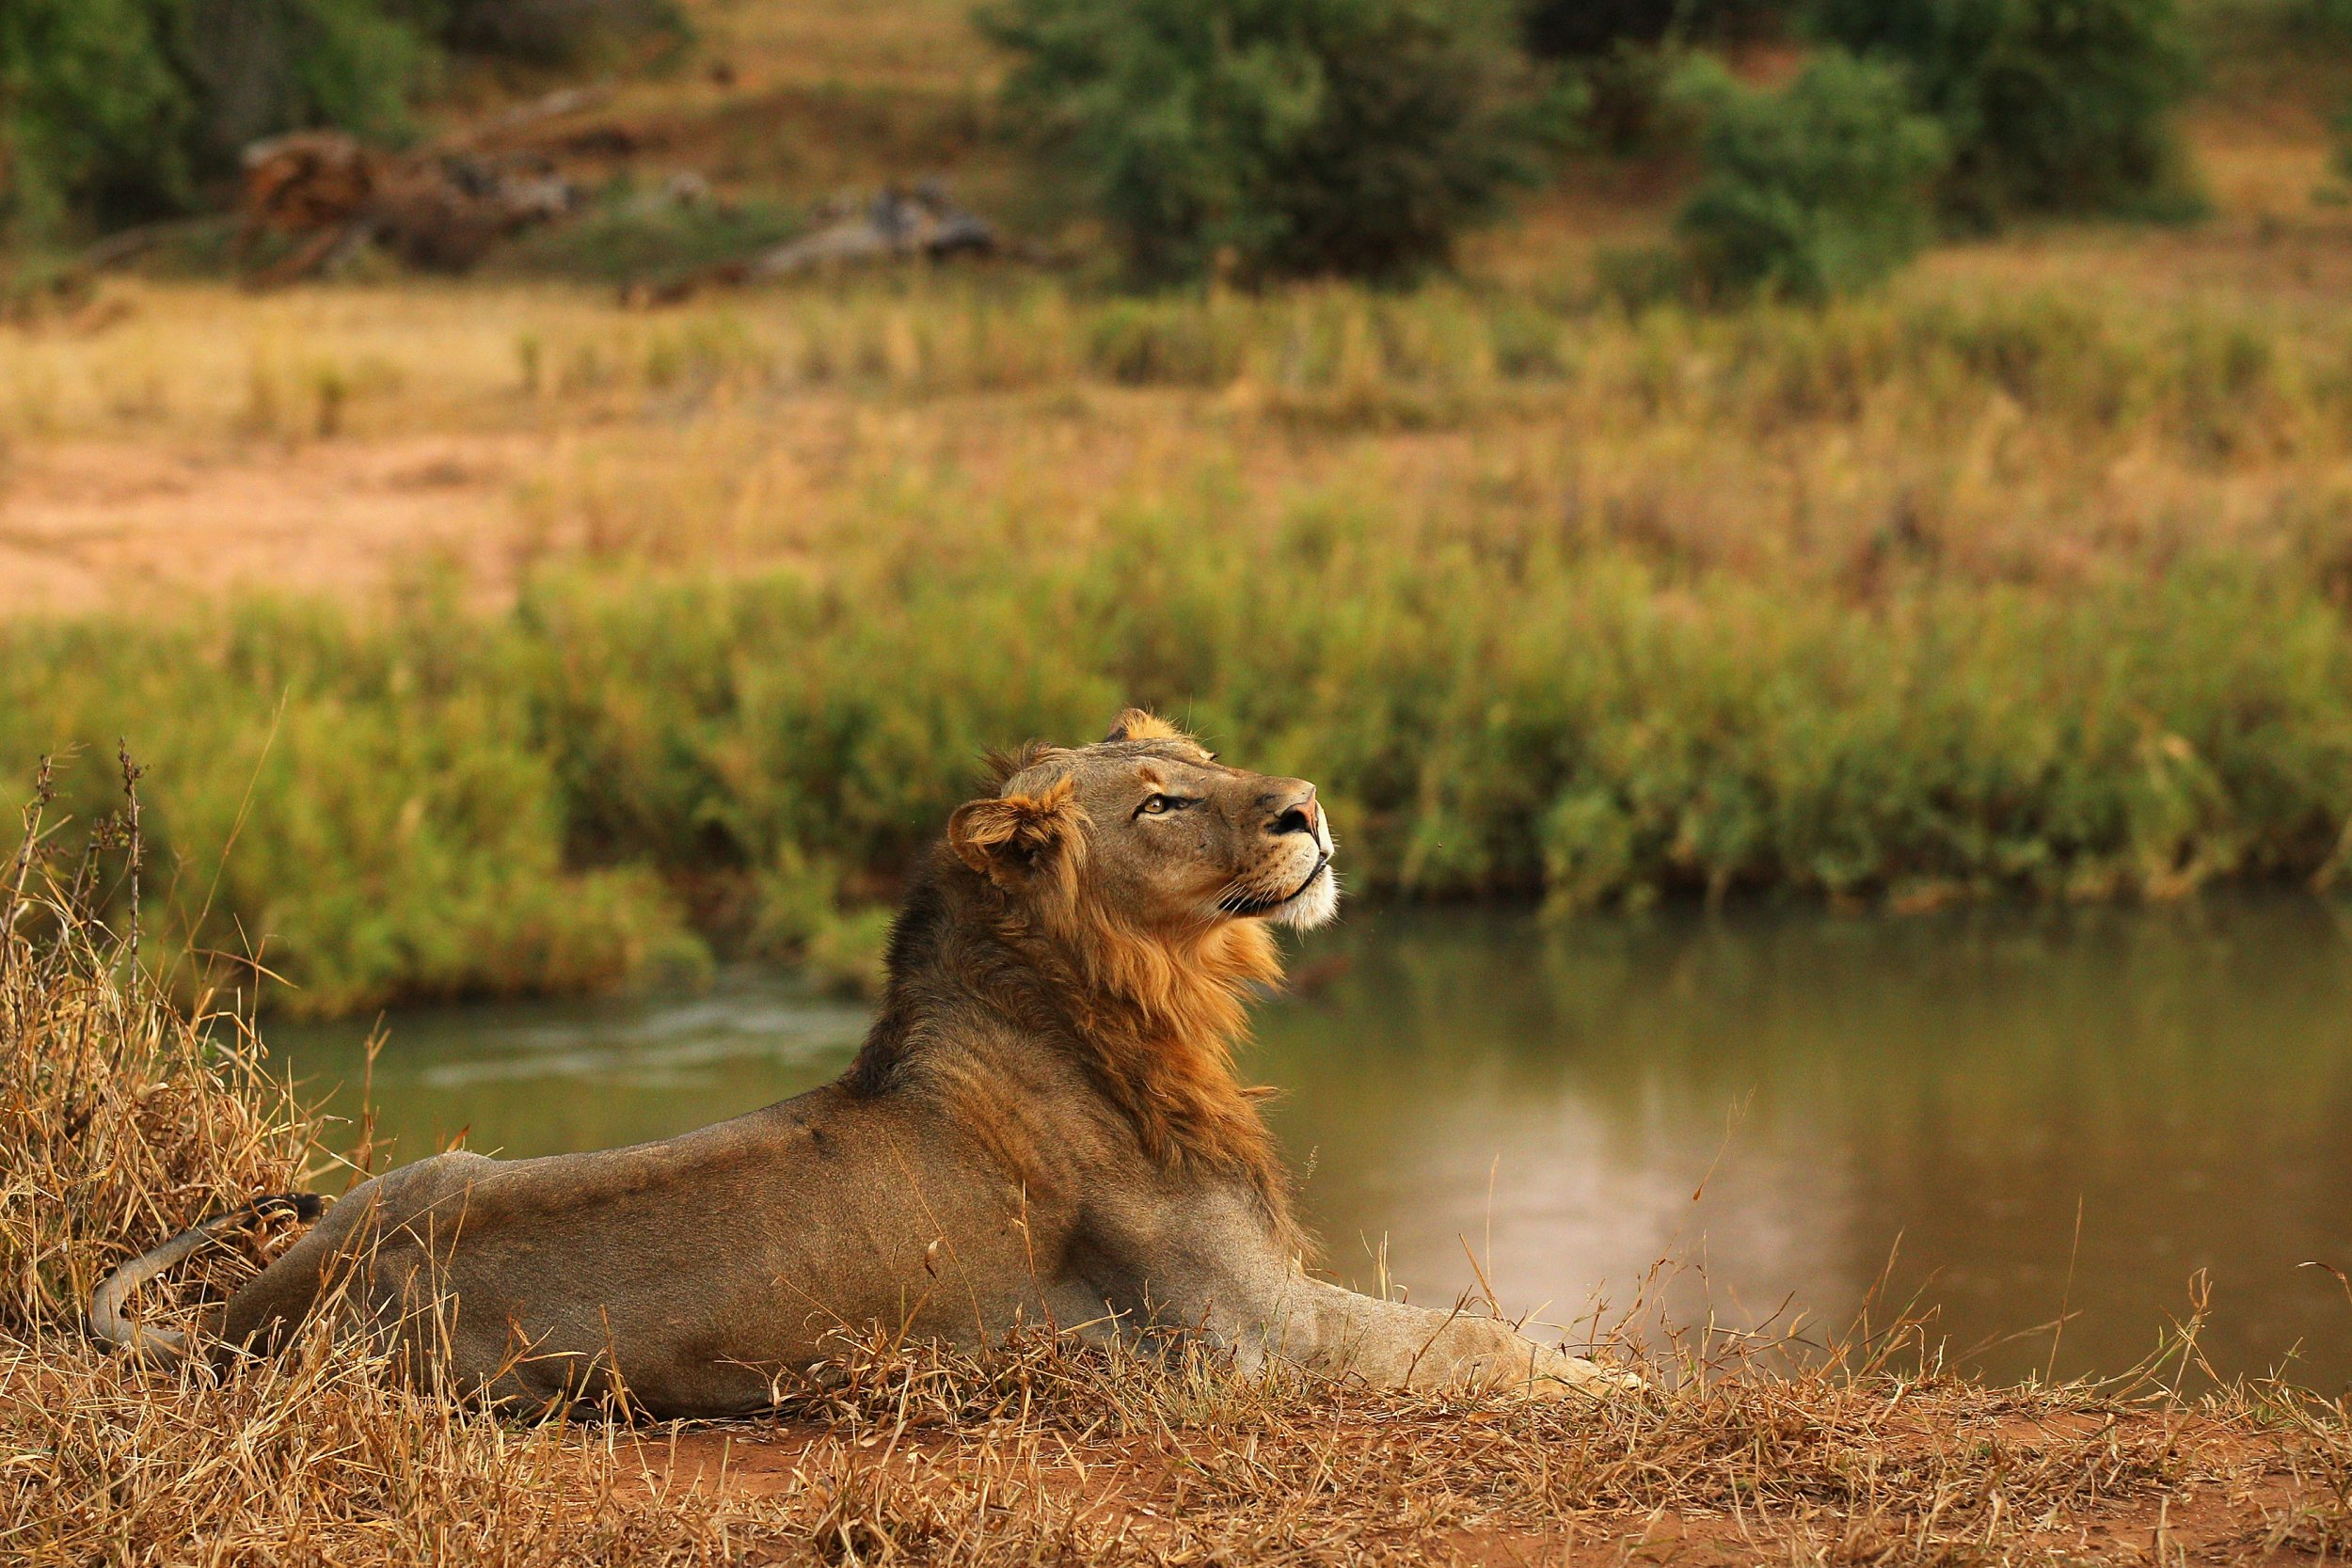 11 Lions Killed in Suspected Mass Poisoning